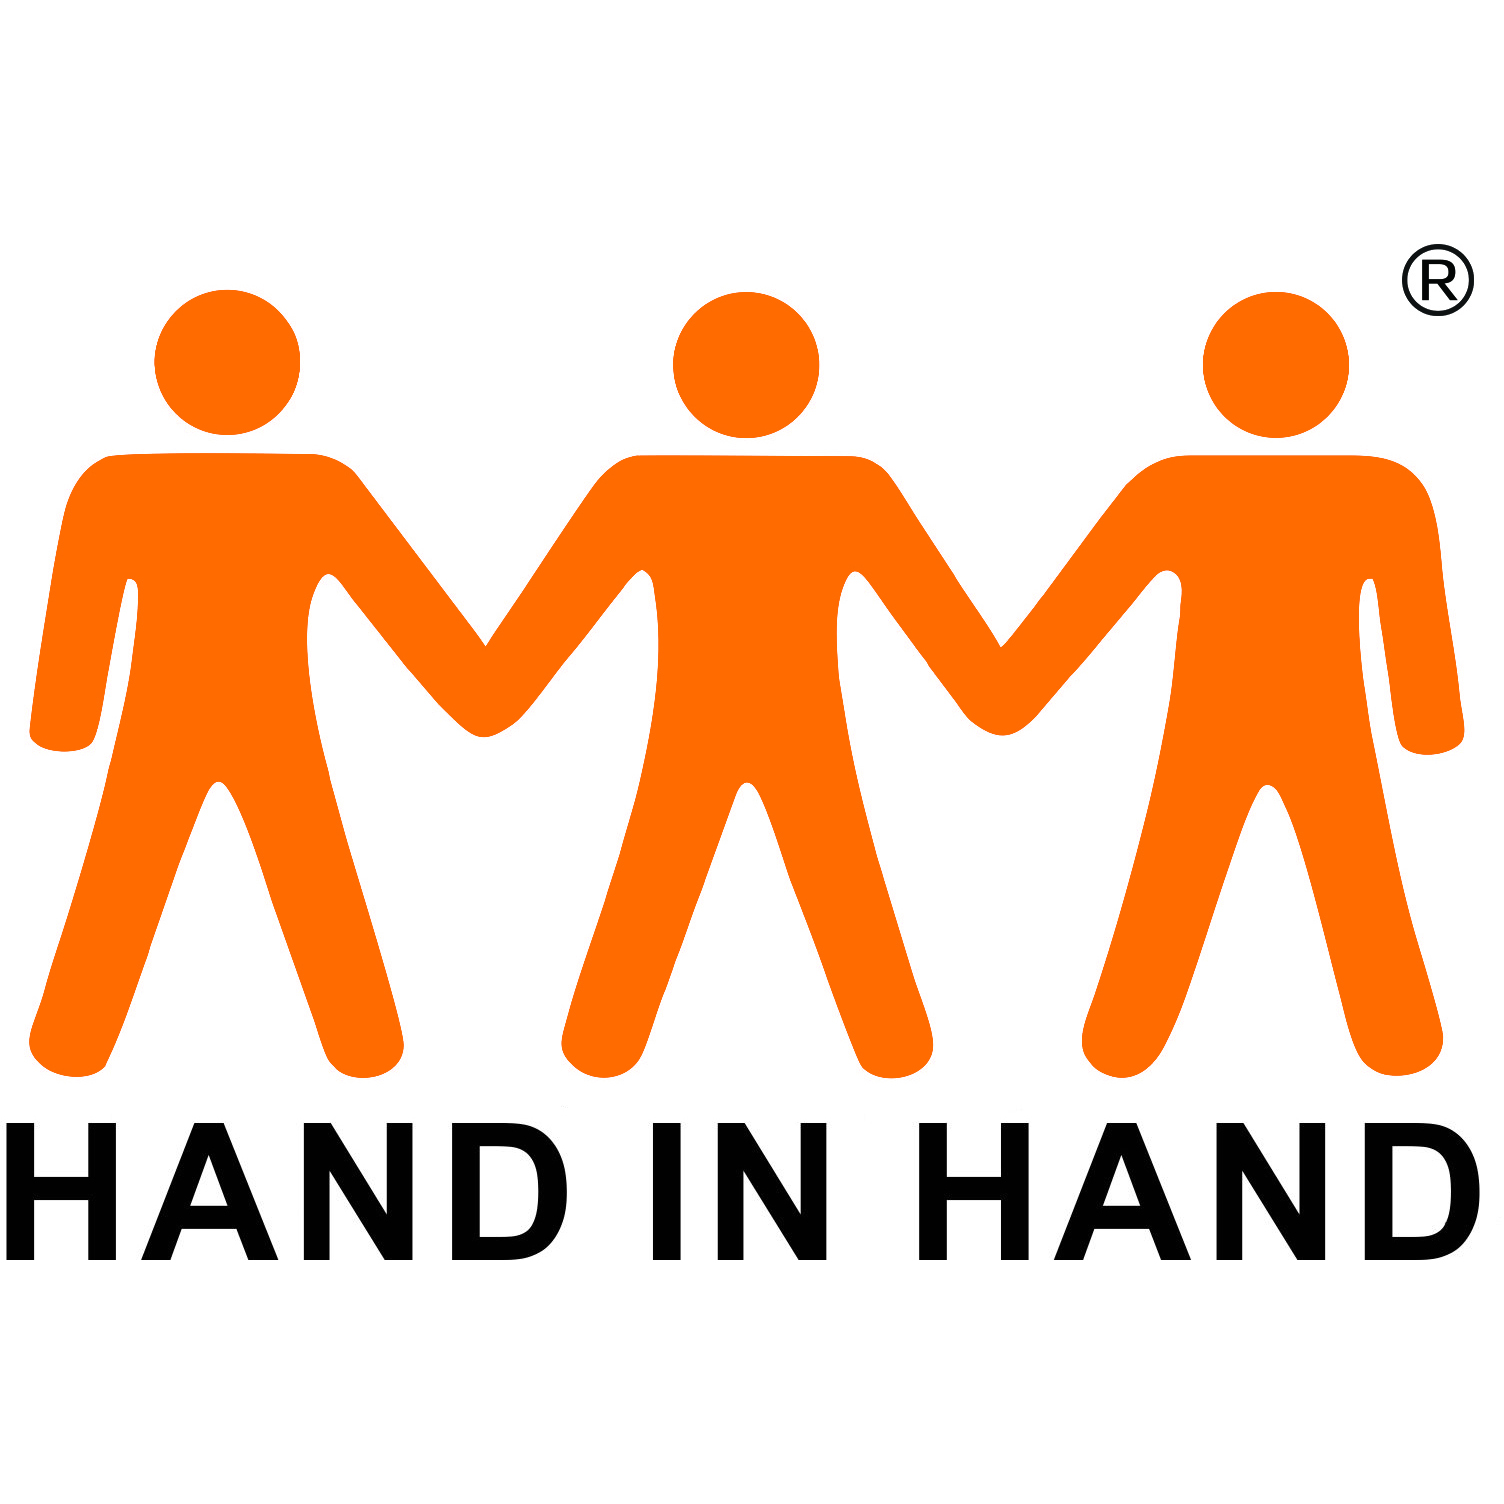 LUOYANG HAND IN HAND FURNITURE CO., LTD